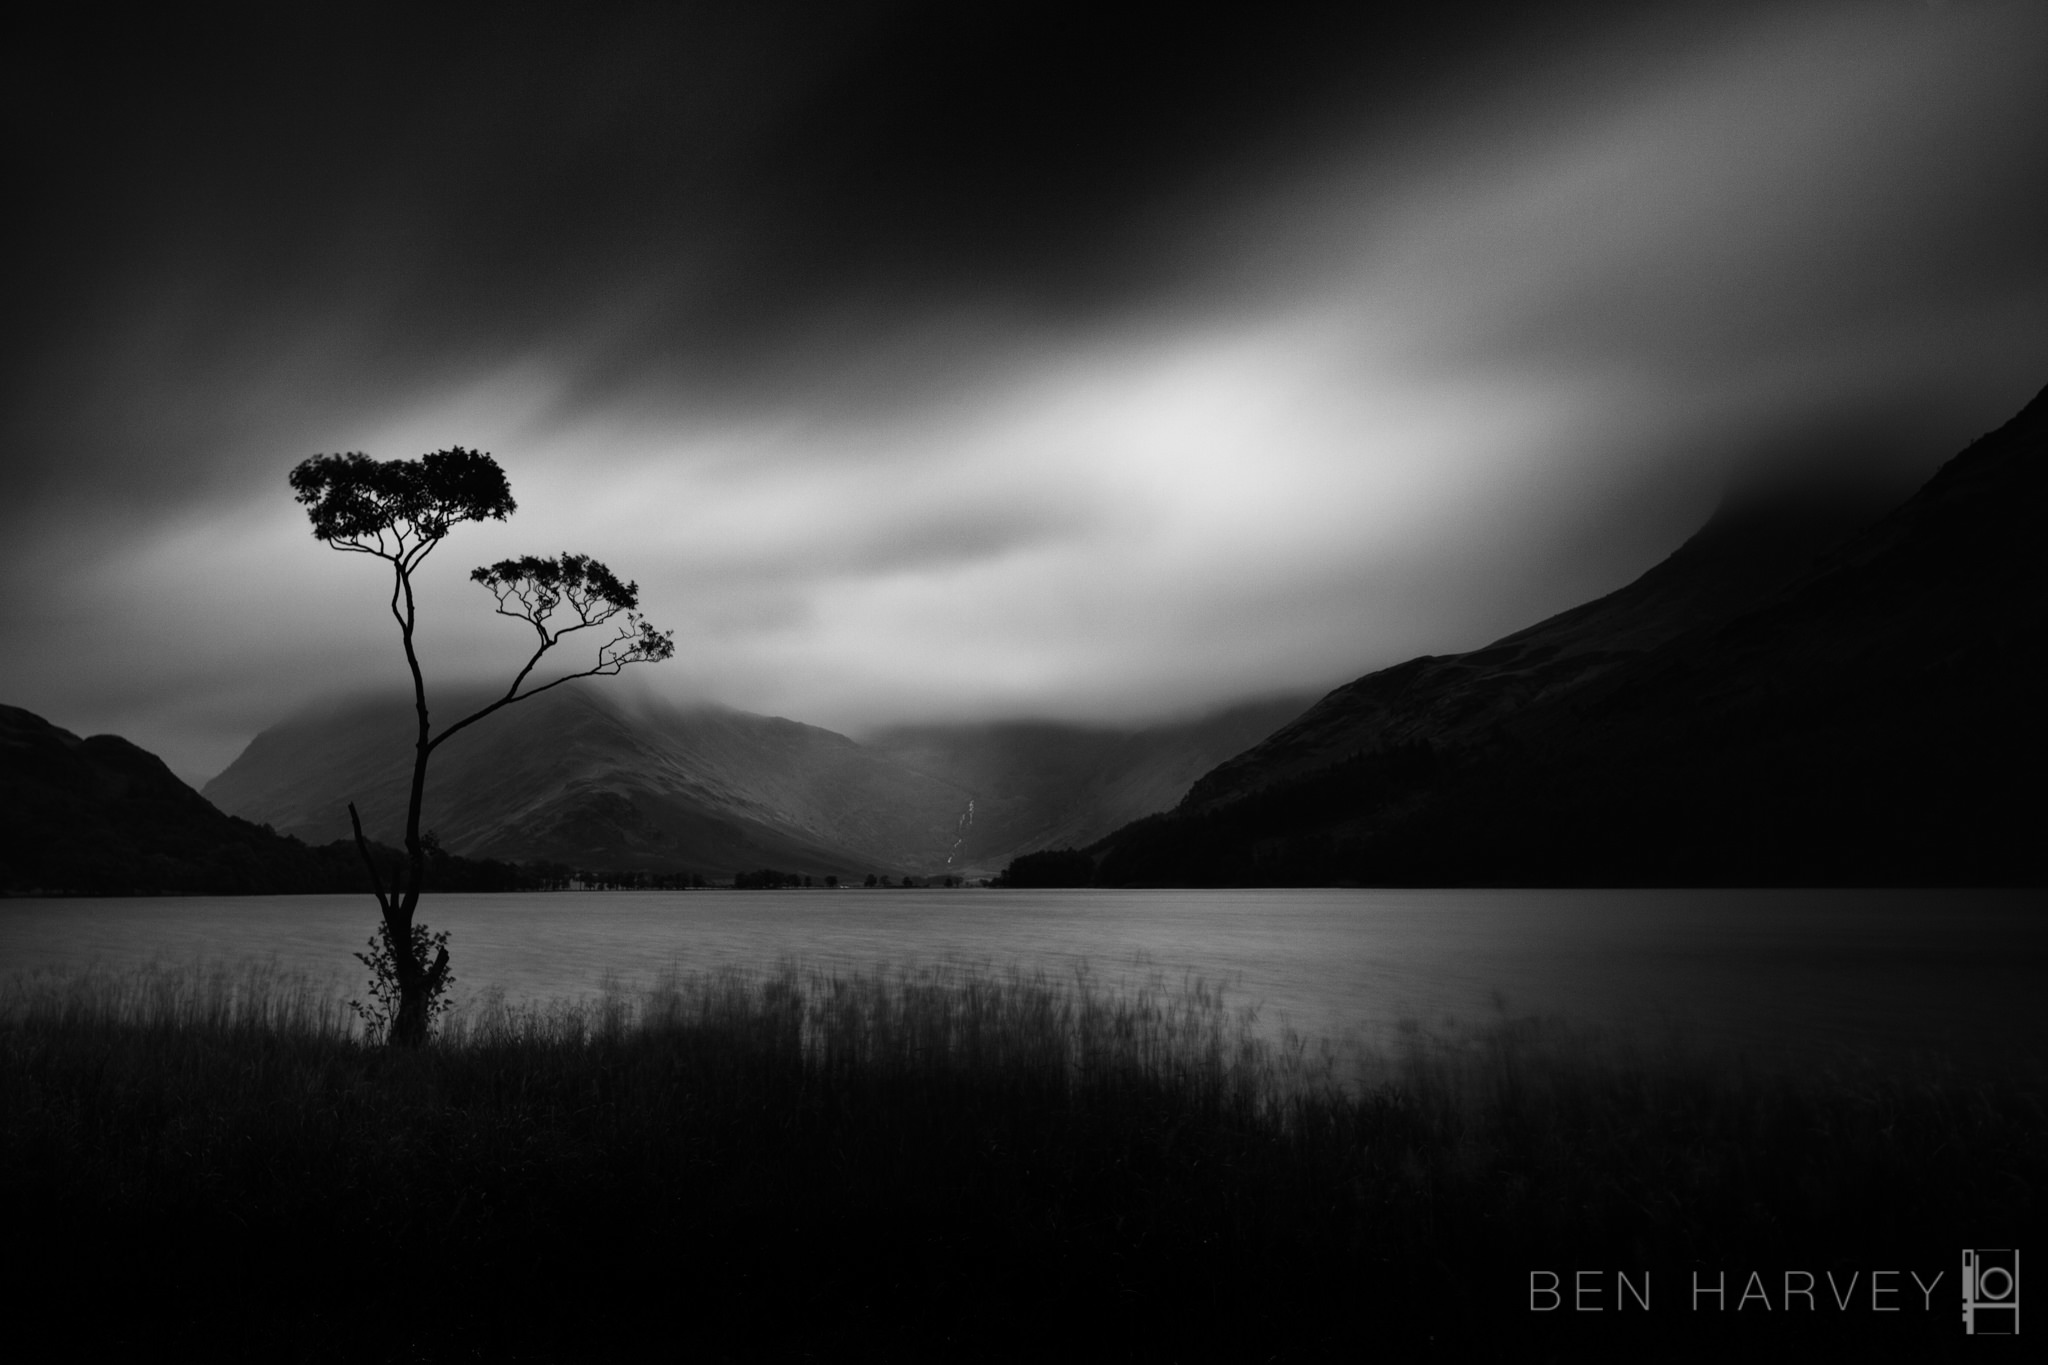 The Lone Tree - Lake Buttermere